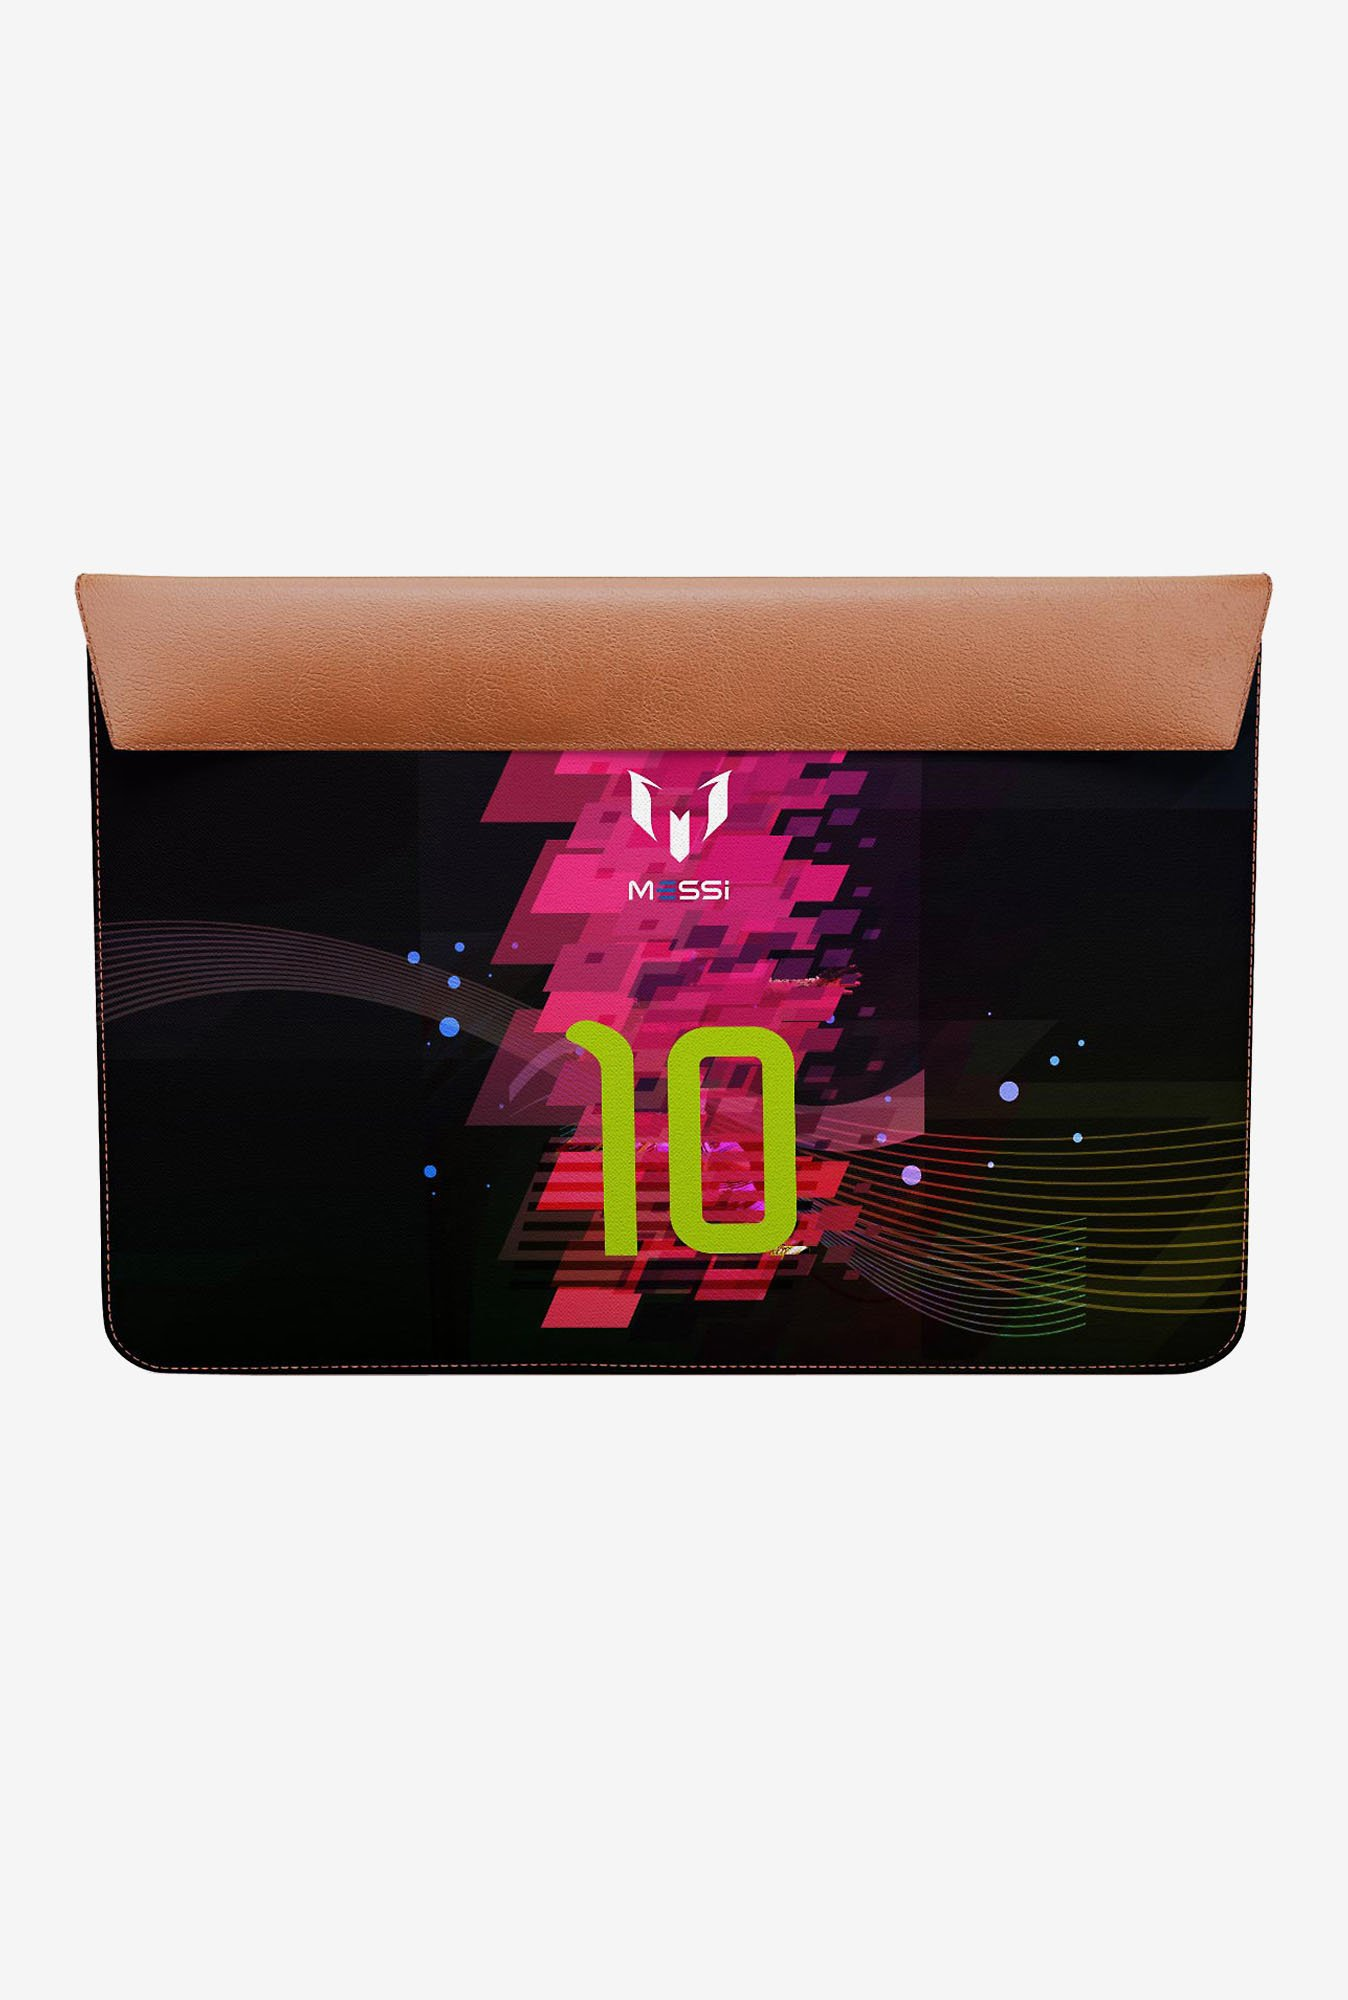 DailyObjects Messi Chaos MacBook 12 Envelope Sleeve